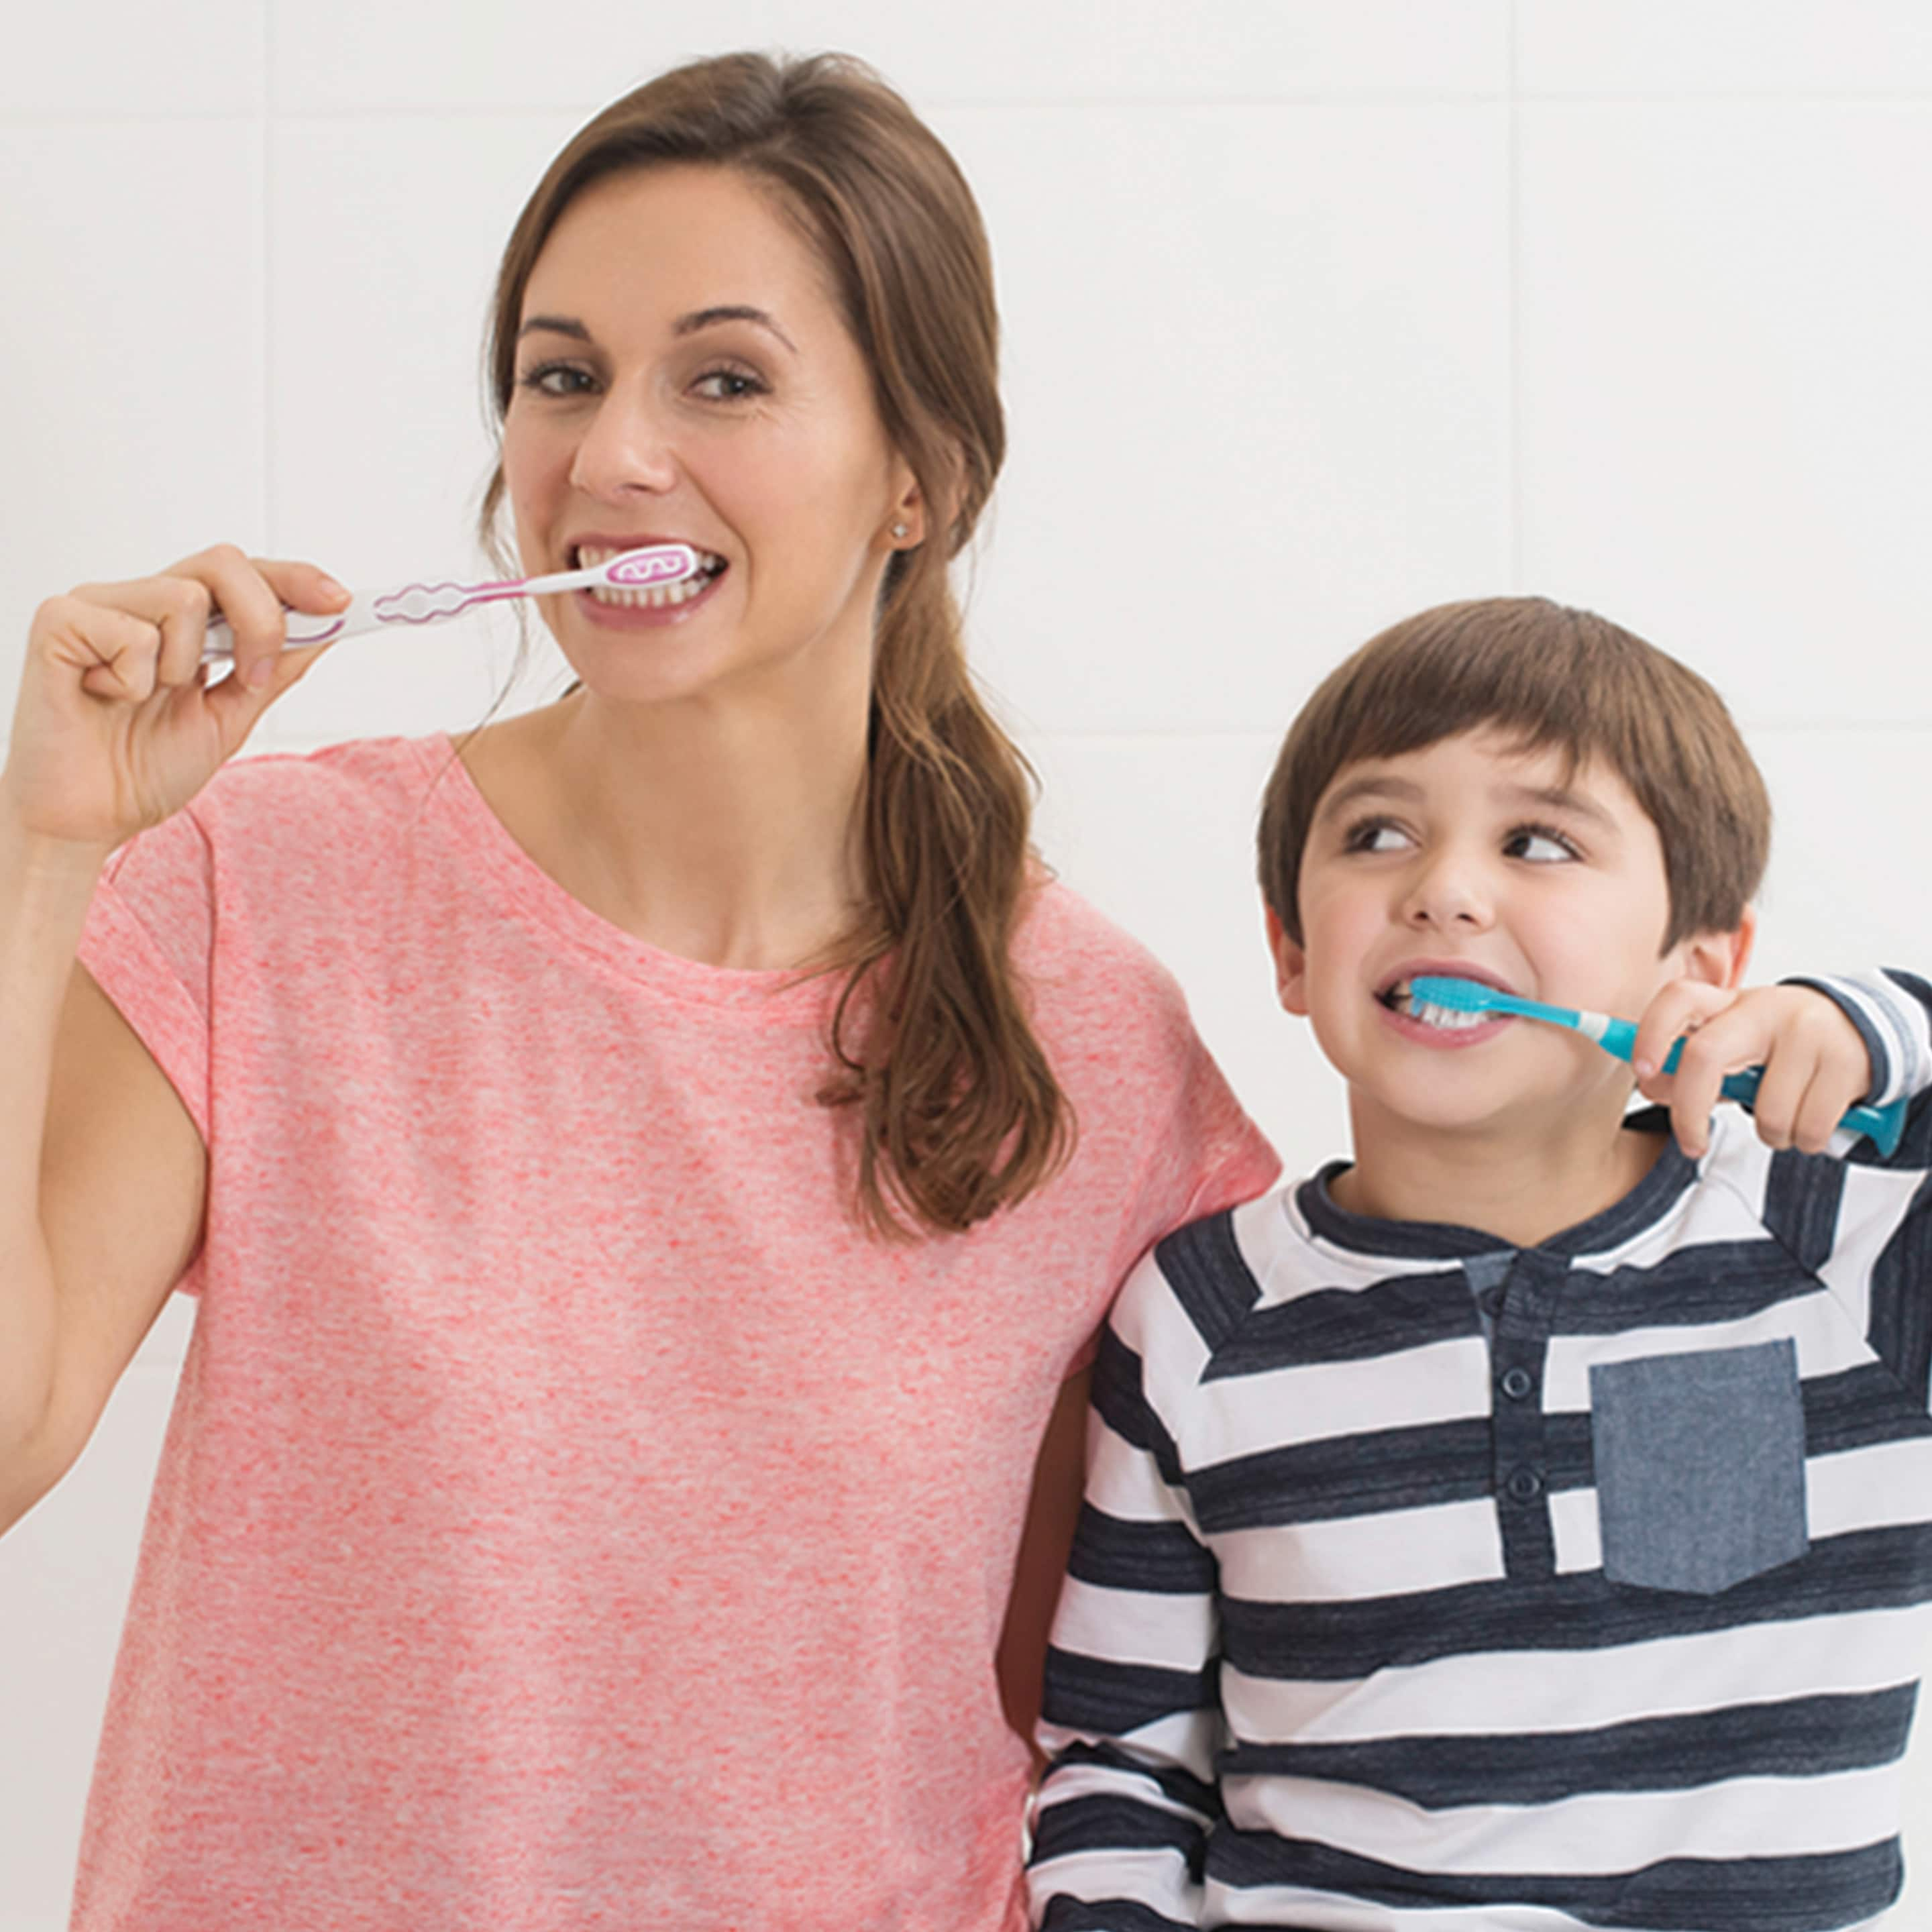 Mom and son brushing their teeth and smiling